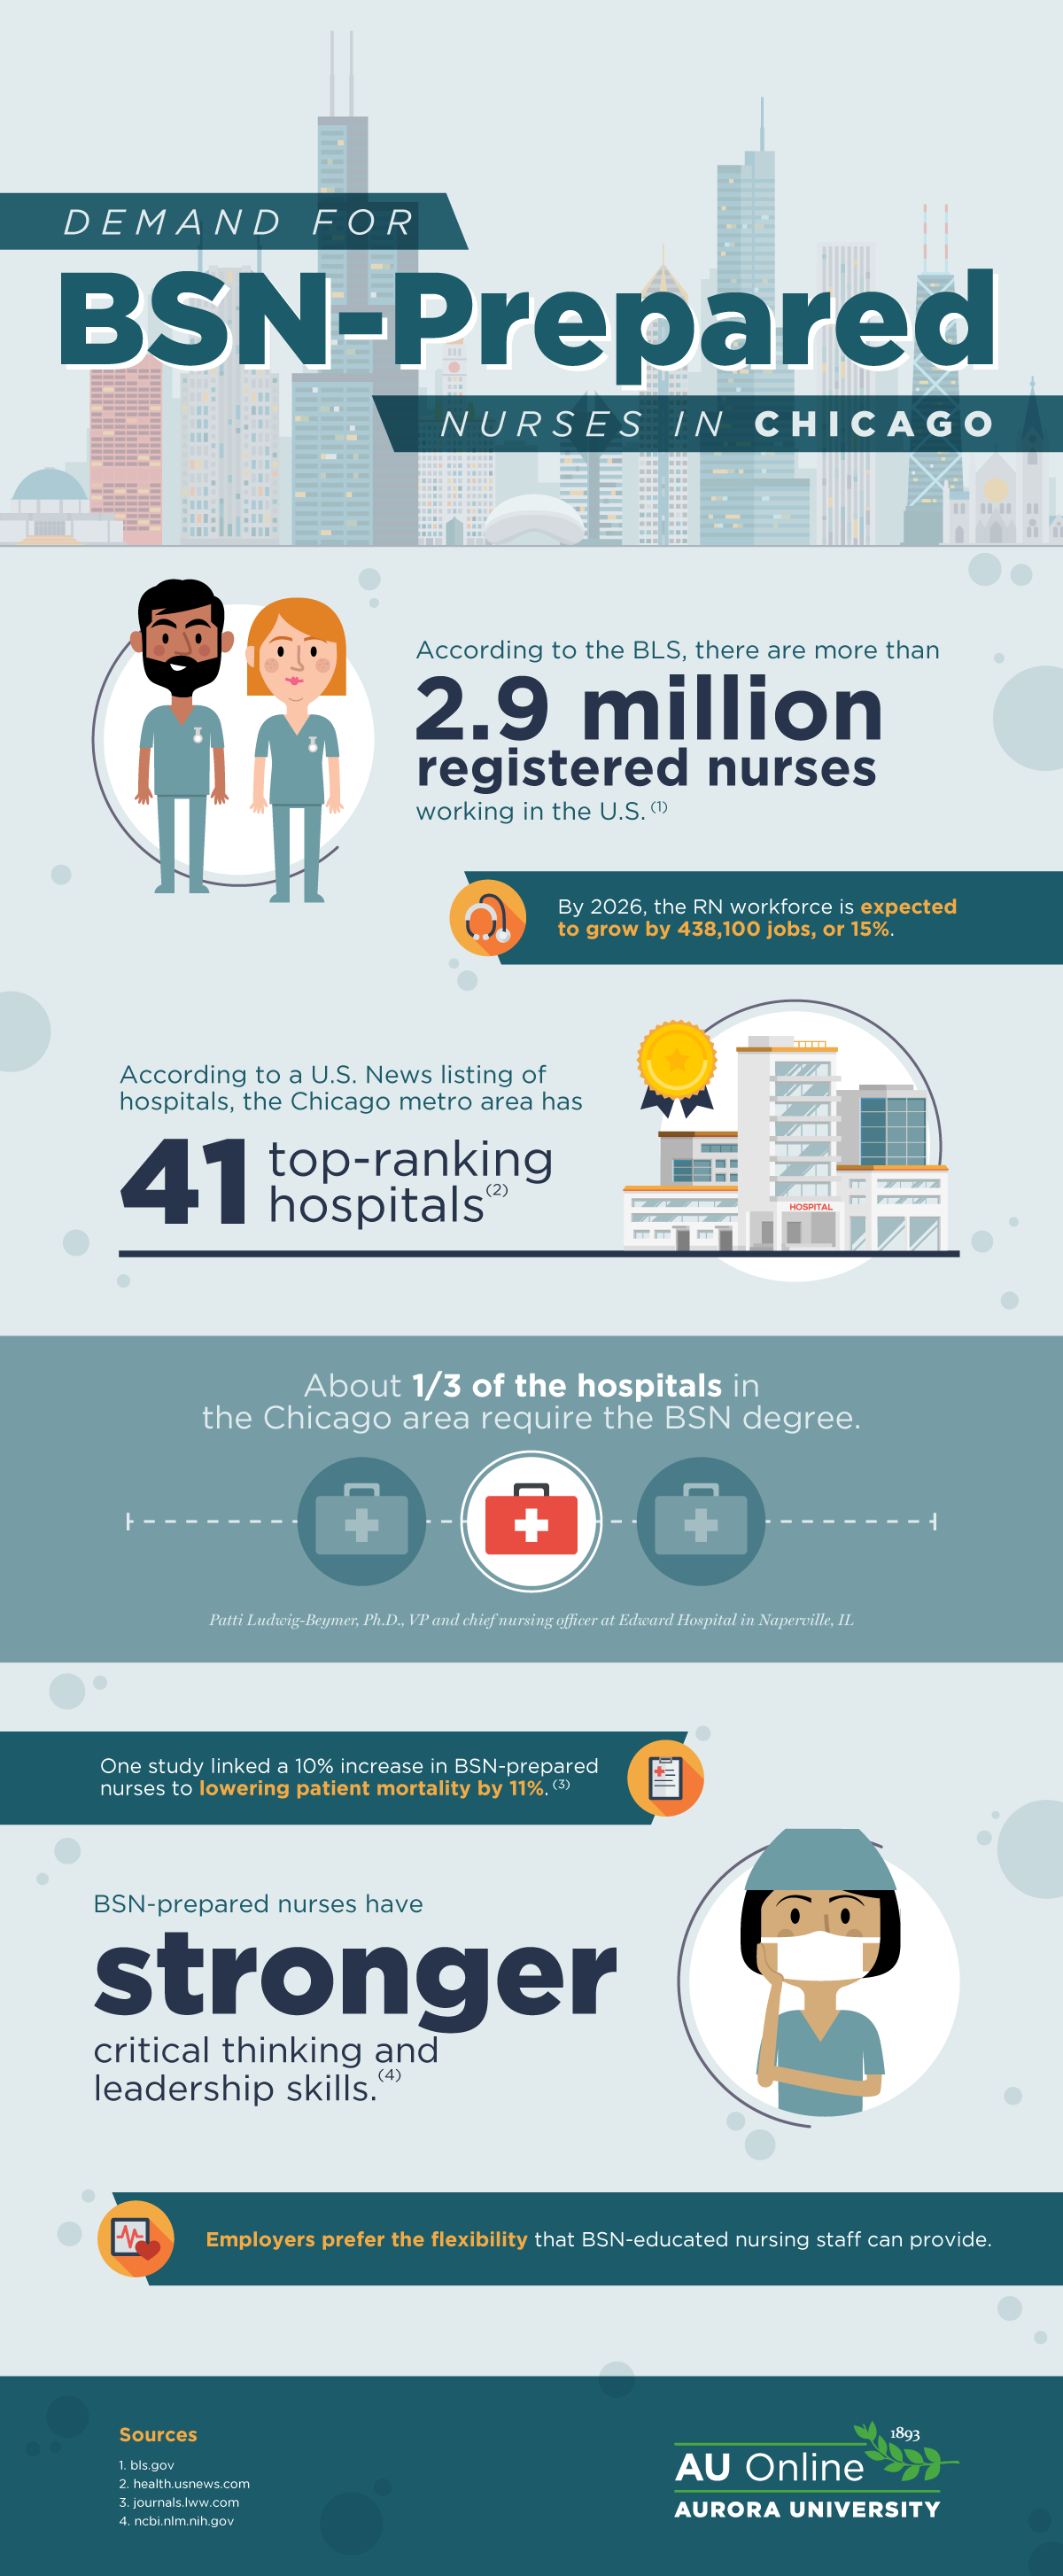 Demand for BSN-prepared Nurses in Chicago